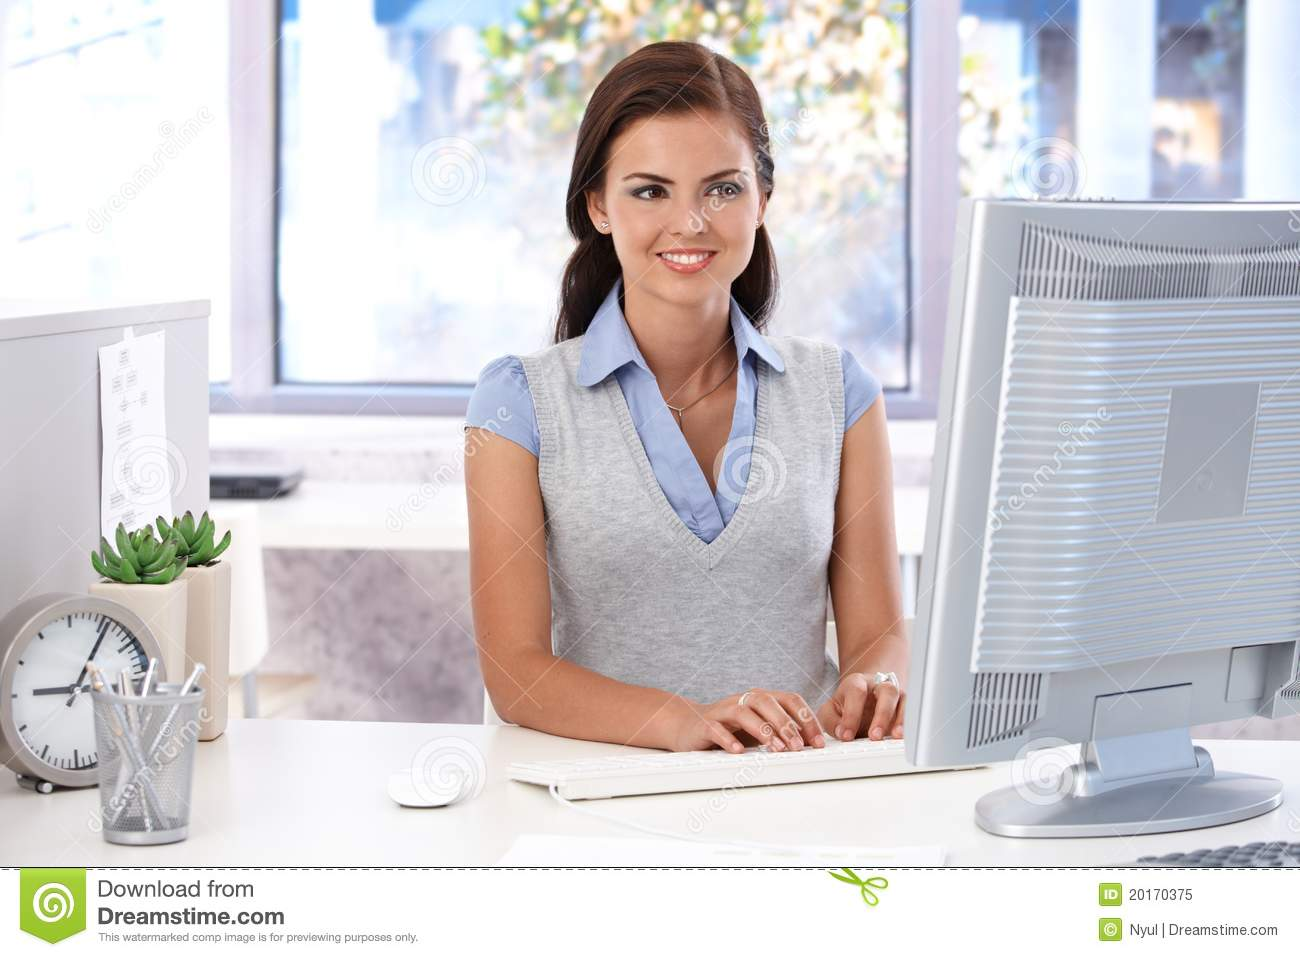 Smiling Office Worker Using Computer Royalty Free Stock Photo - Image